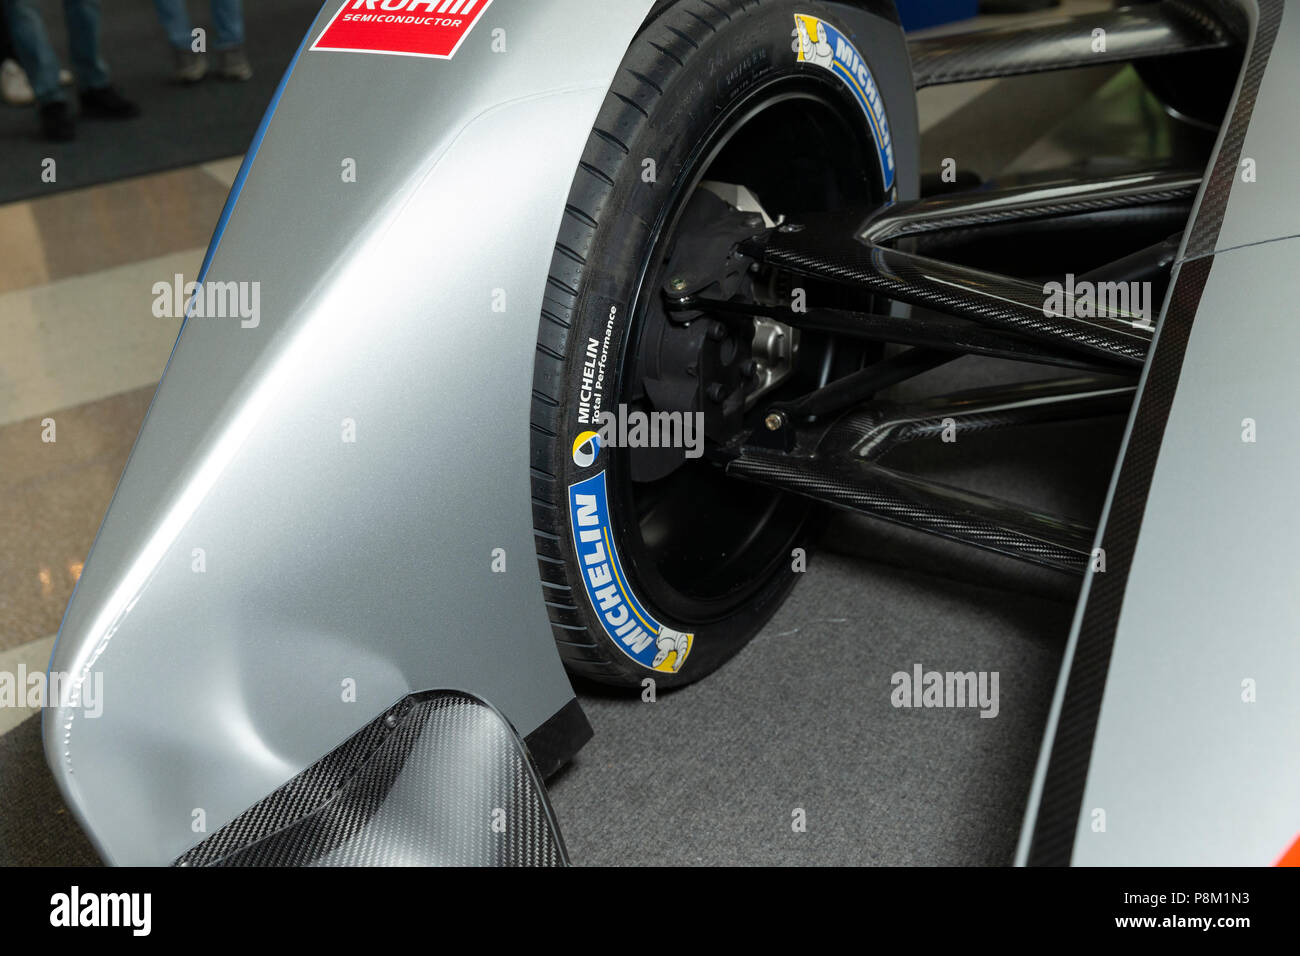 new york, ny - july 12, 2018: formula-e race car on display during